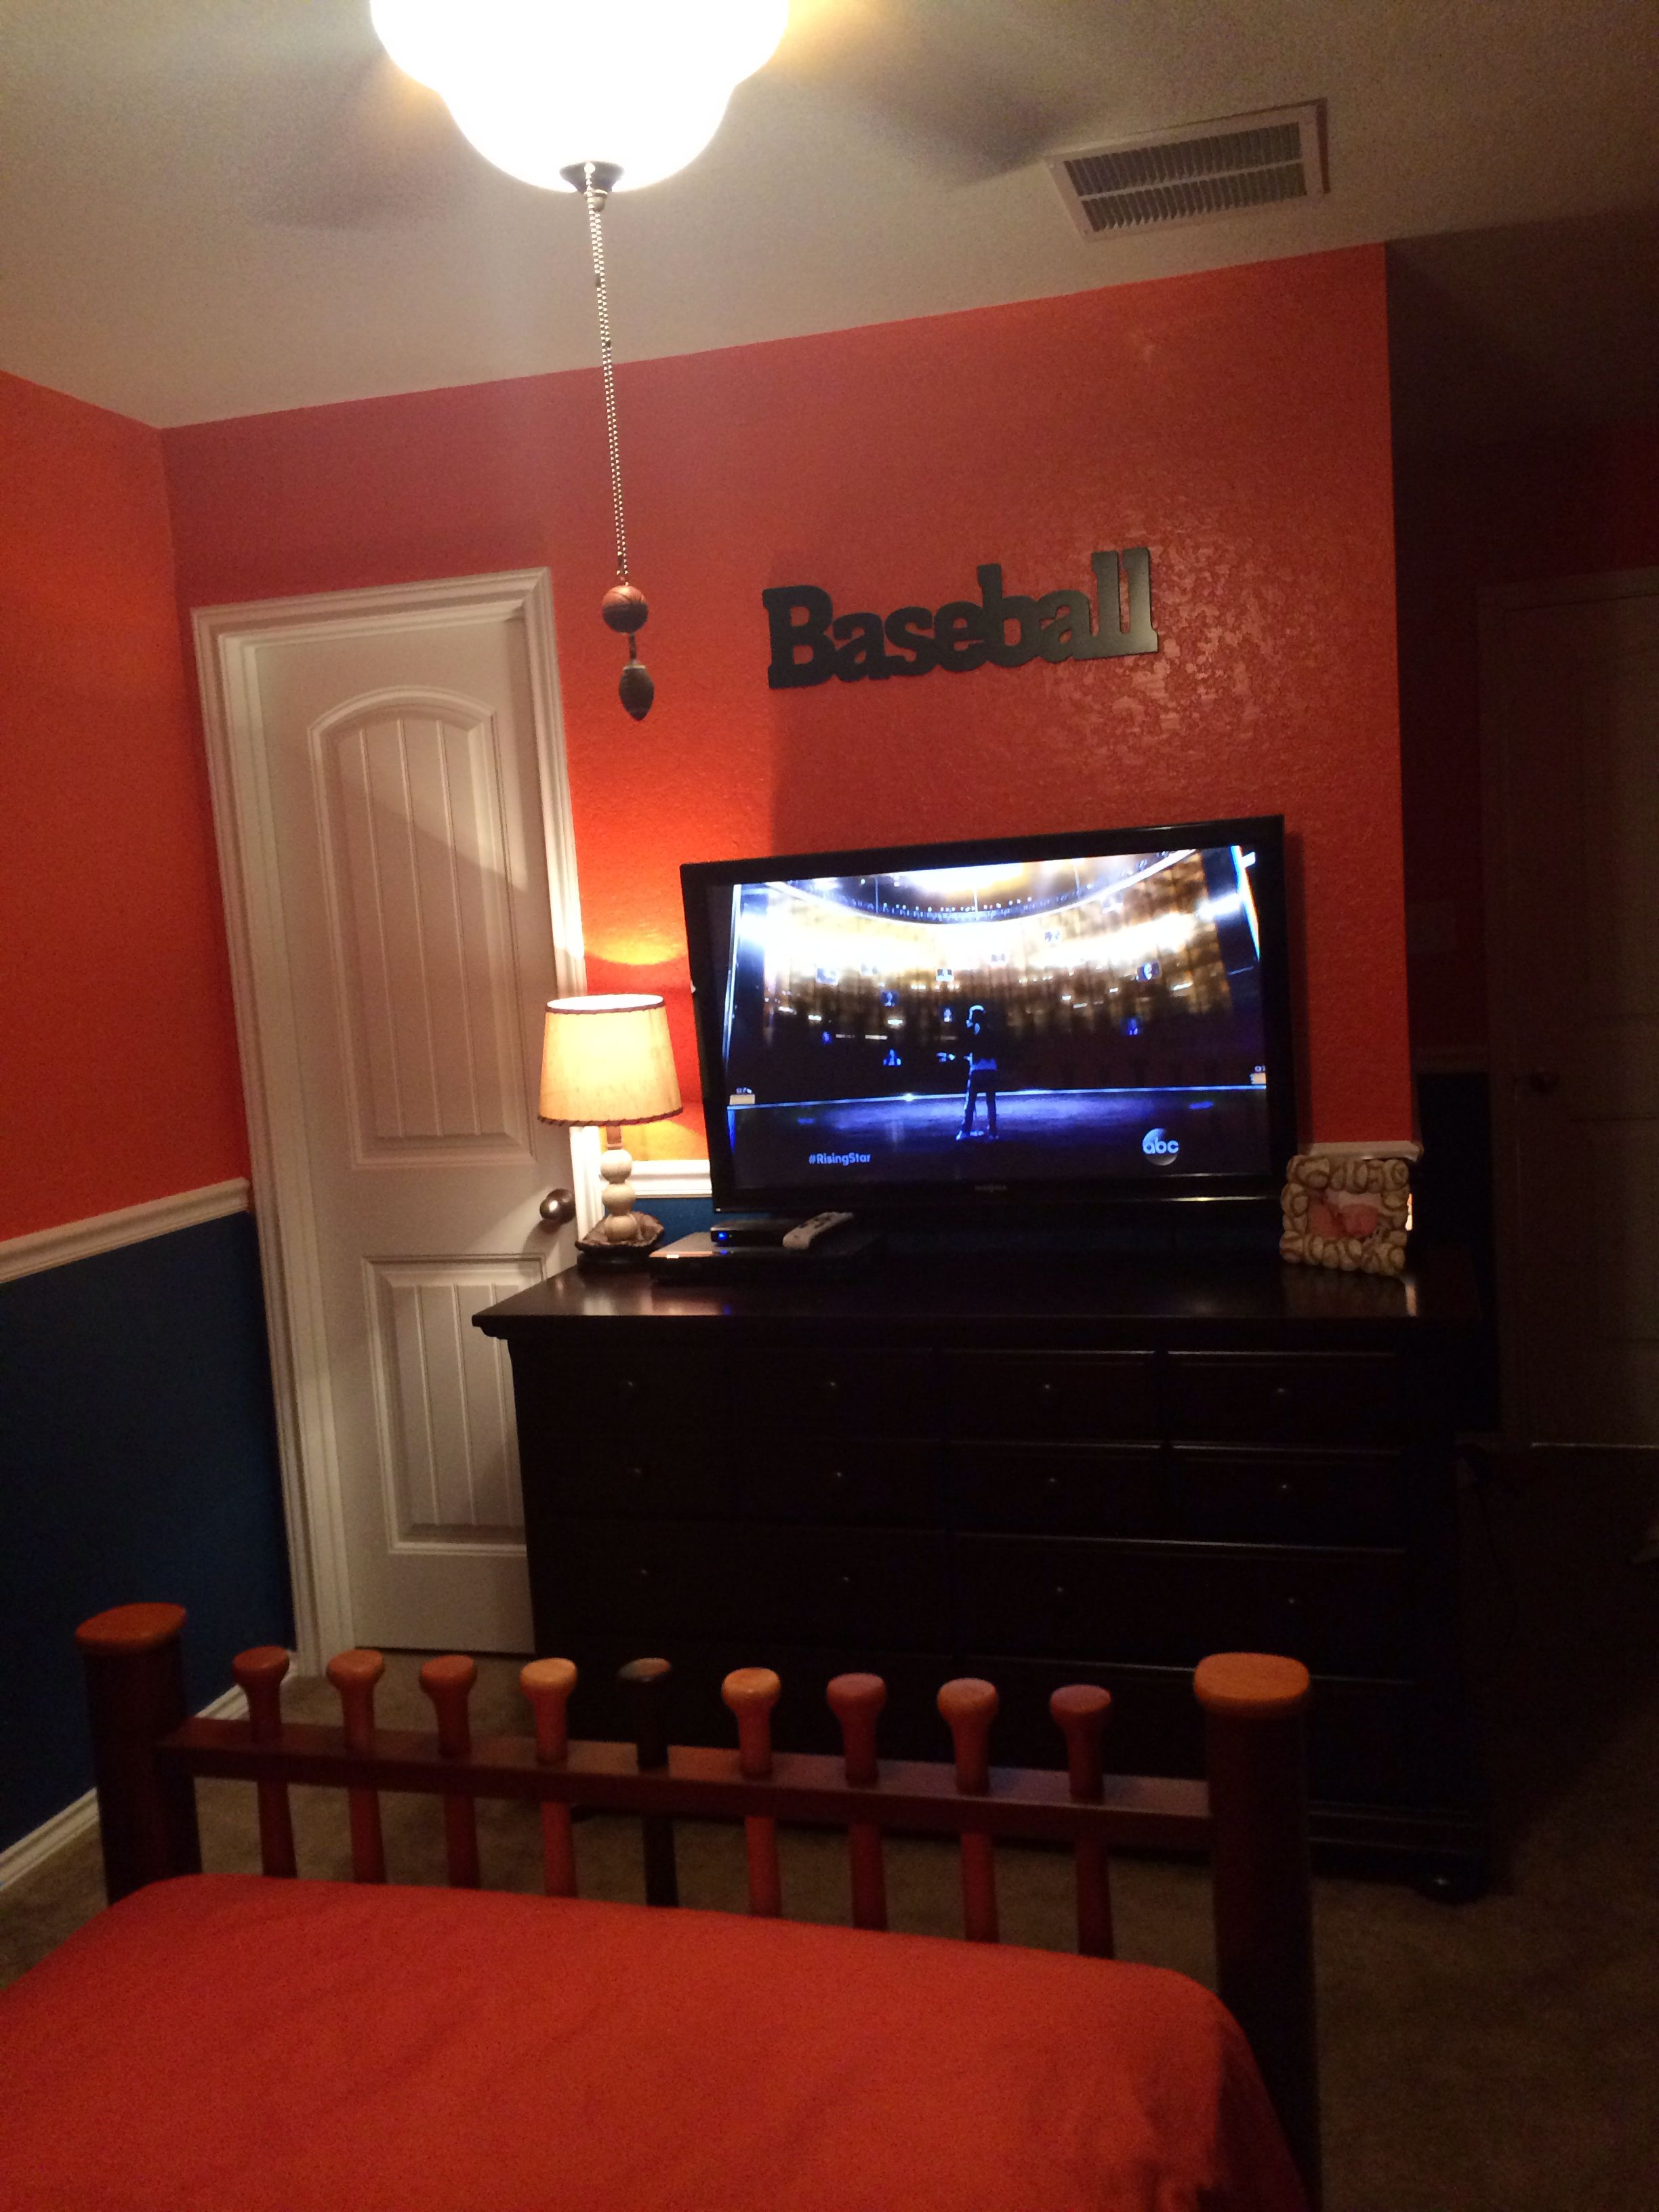 Kasons Room, Baseball, Blue And Orange, Pottery Barn, Rooms To